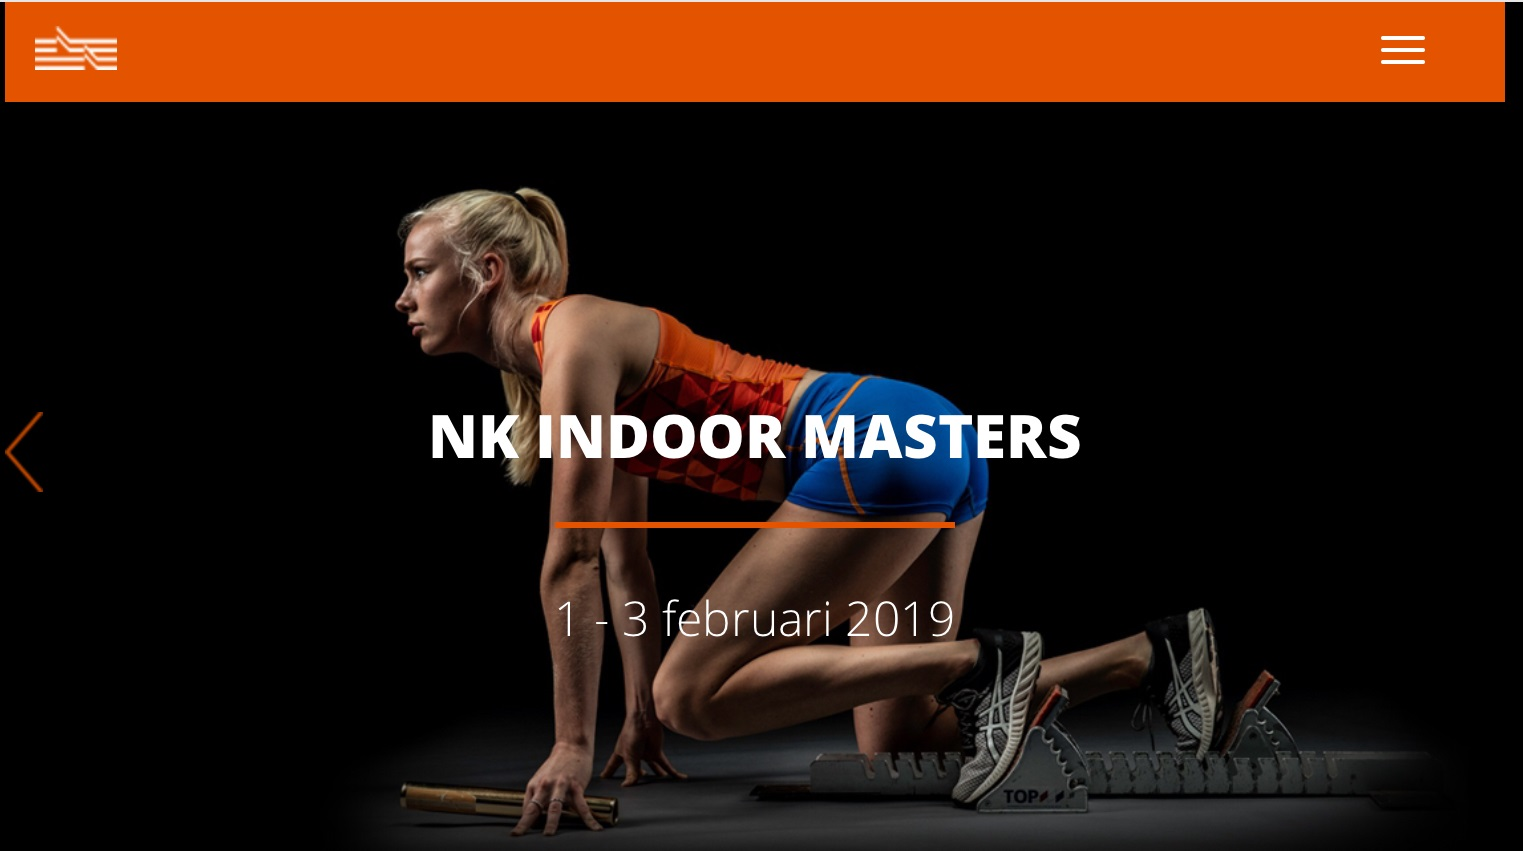 NK Indoor Masters 2019